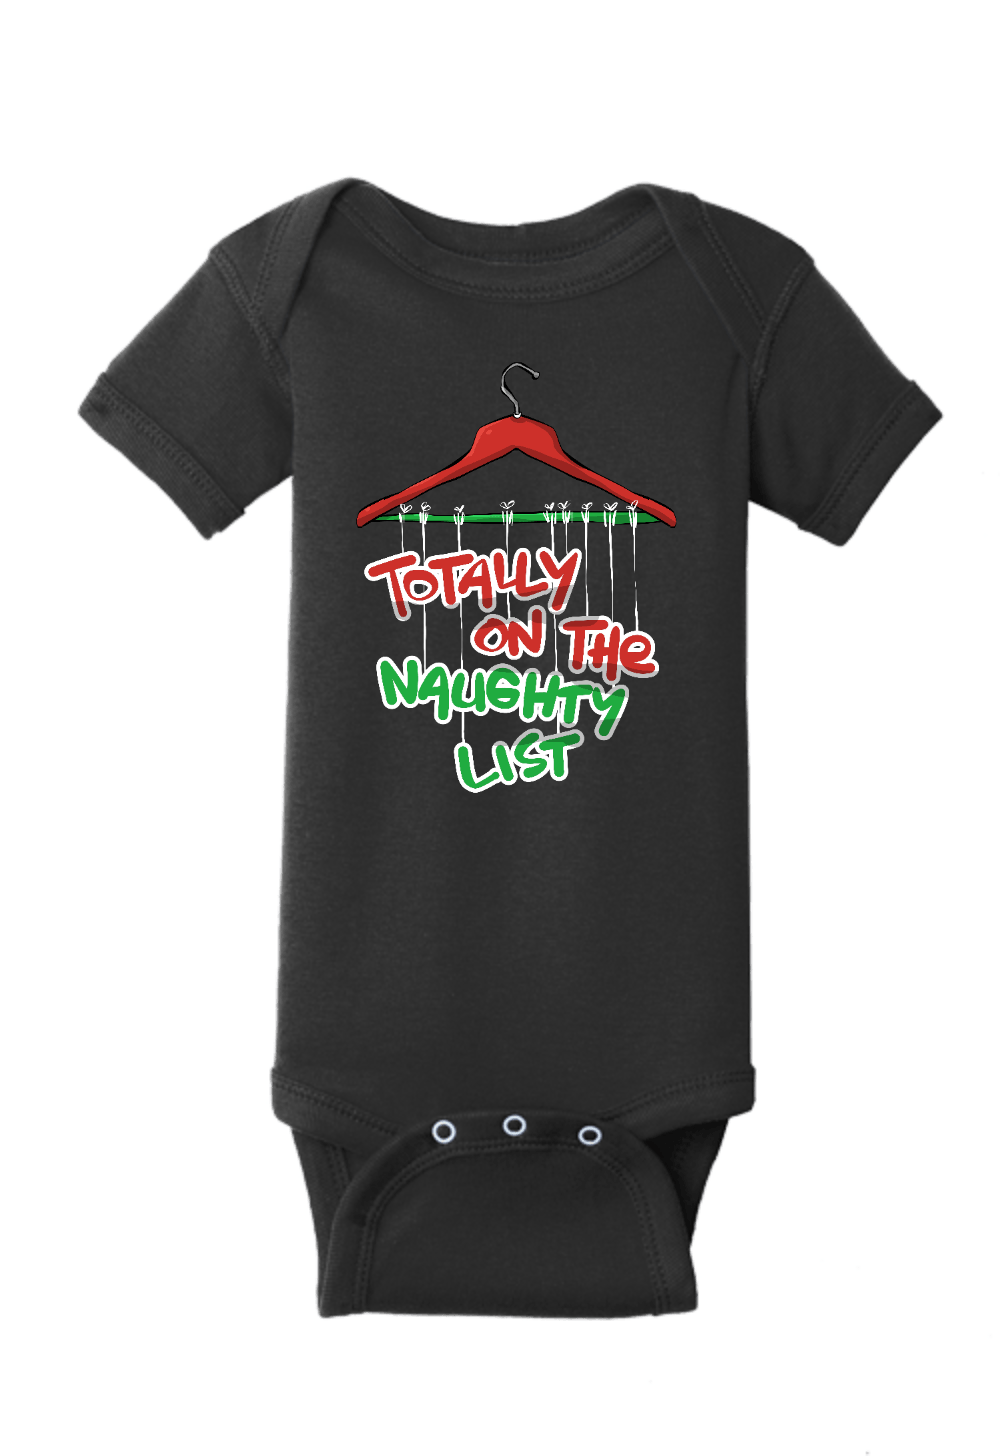 Totally on the Naughty List Christmas Onesie